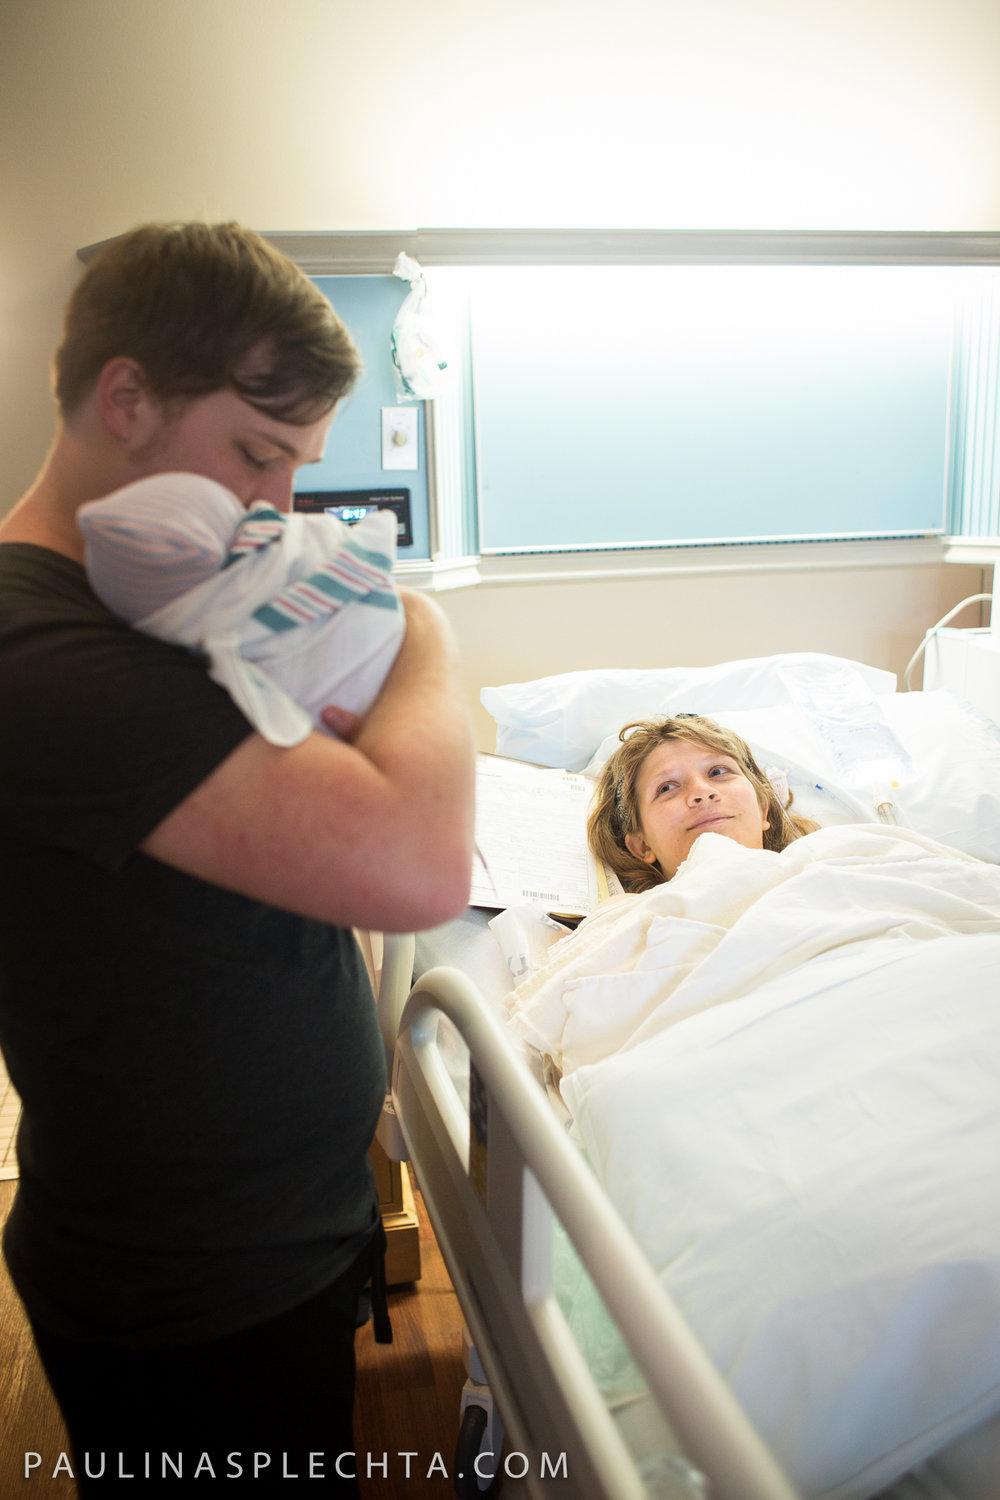 huffington-post-beautiful-photos-moms-c-section-birth-good-samaritan-west-palm-beach-boca-regional-raton-courtney-mcmillian-cosmopolitan-birth-photographer-18.jpg